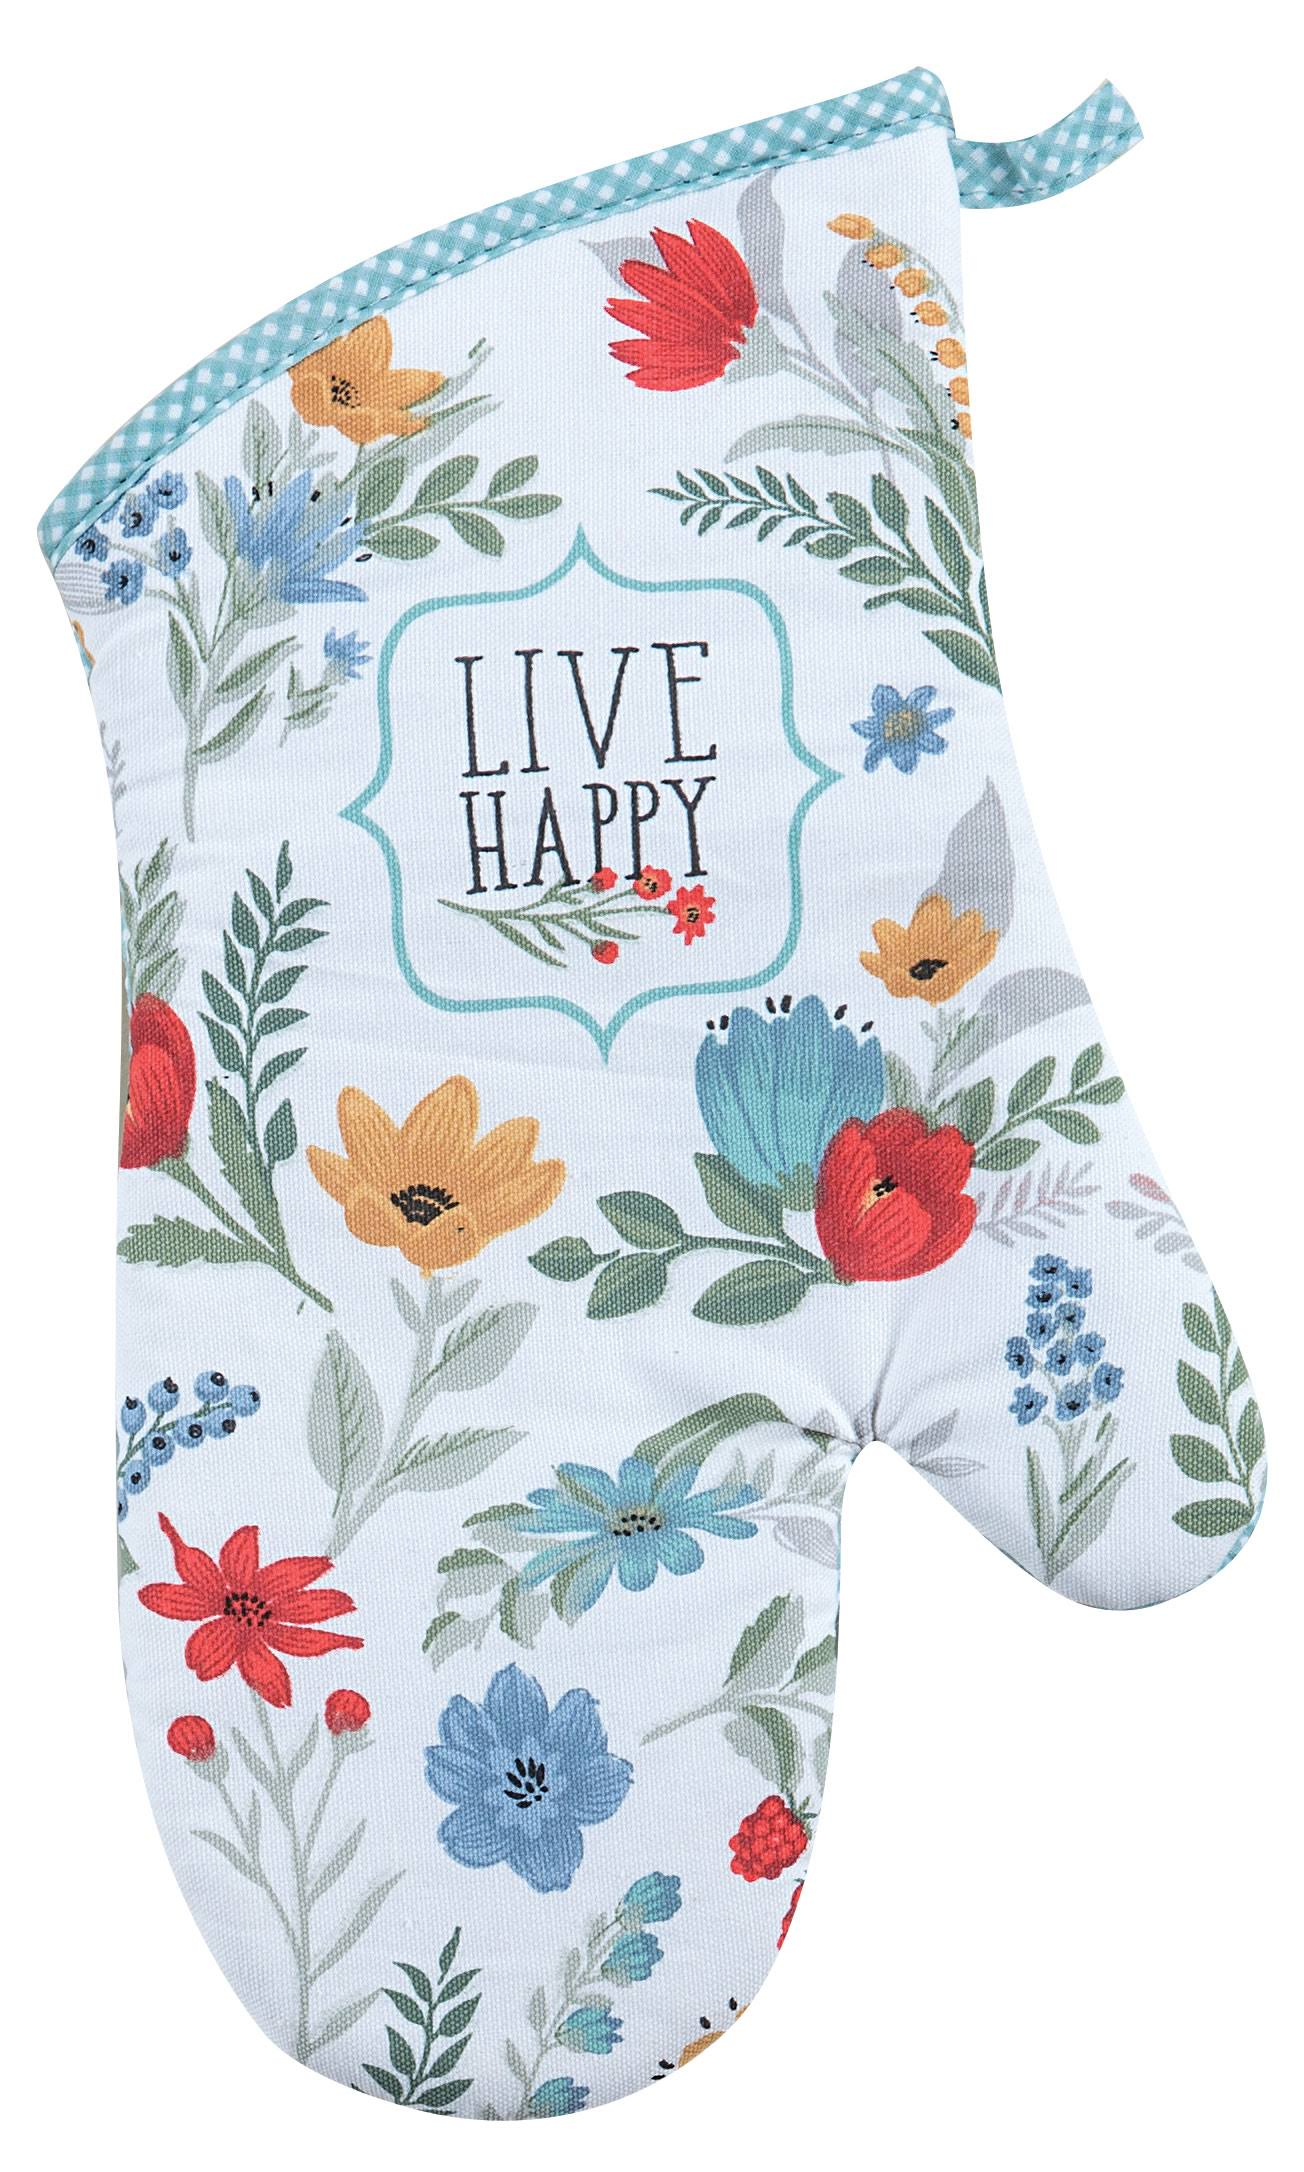 Kay Dee Designs R3945 Blooming Thoughts Oven Mitt